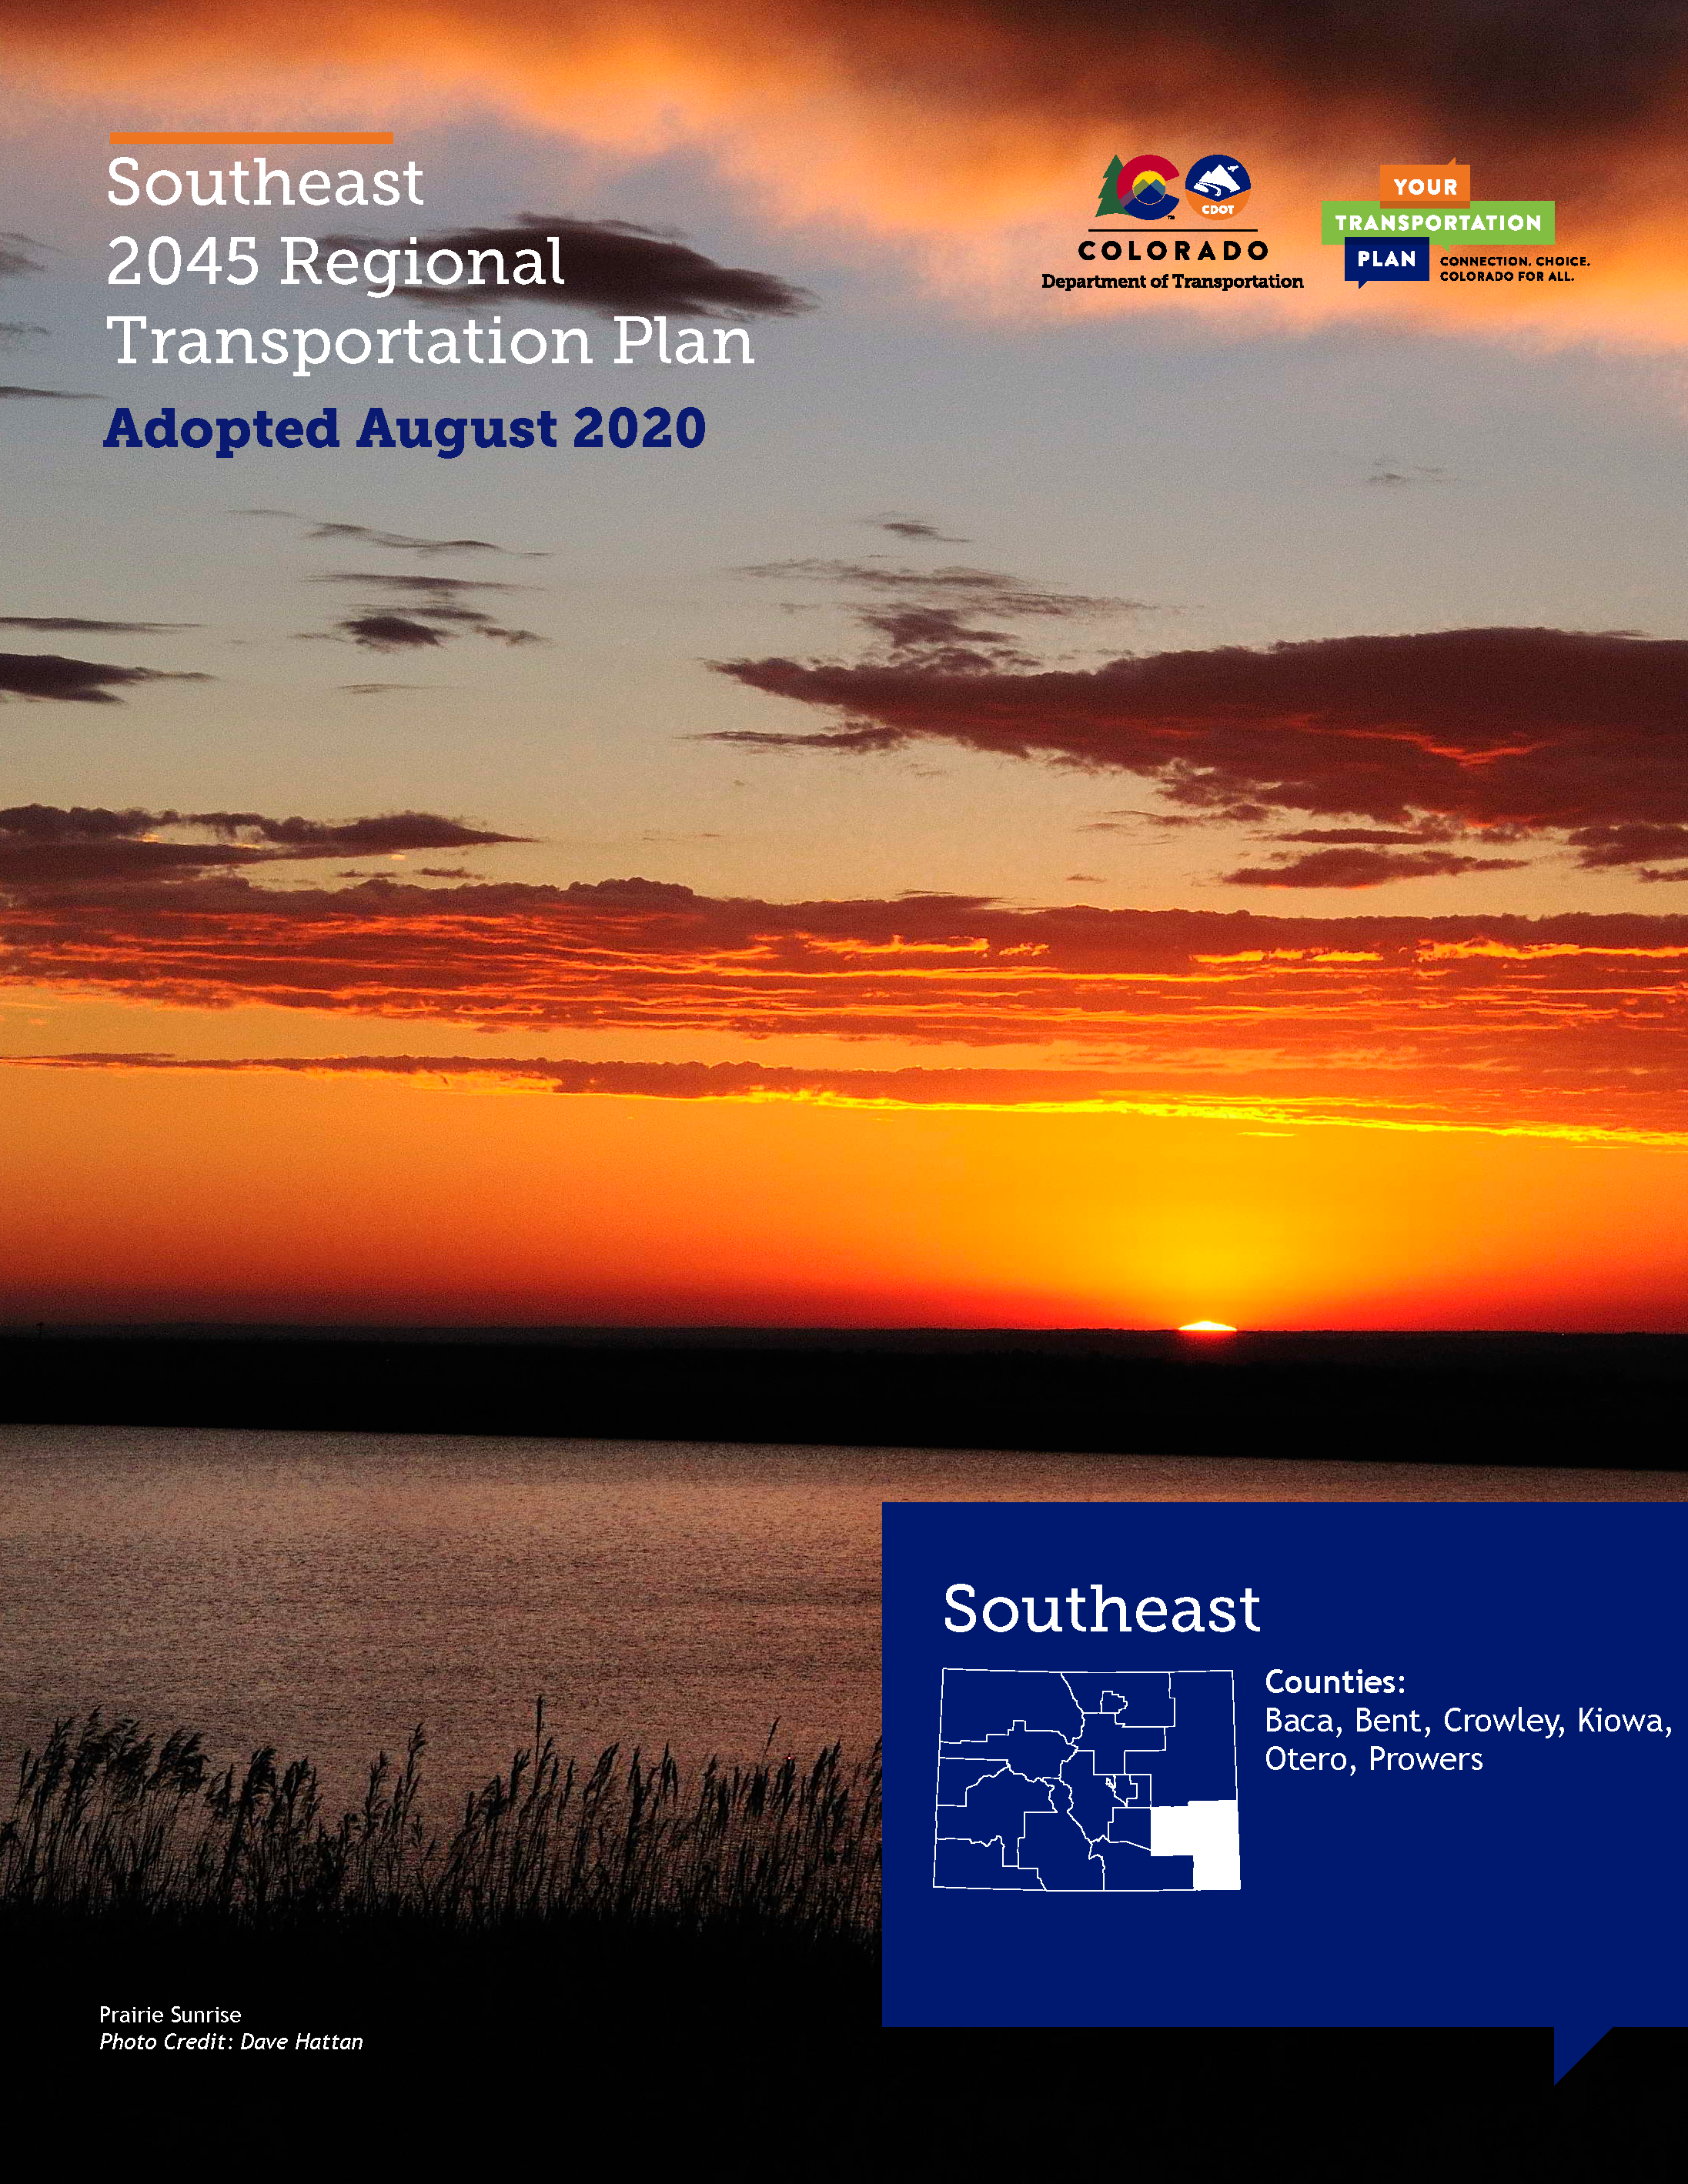 Southeast Regional Transportation Plan 2045 Cover